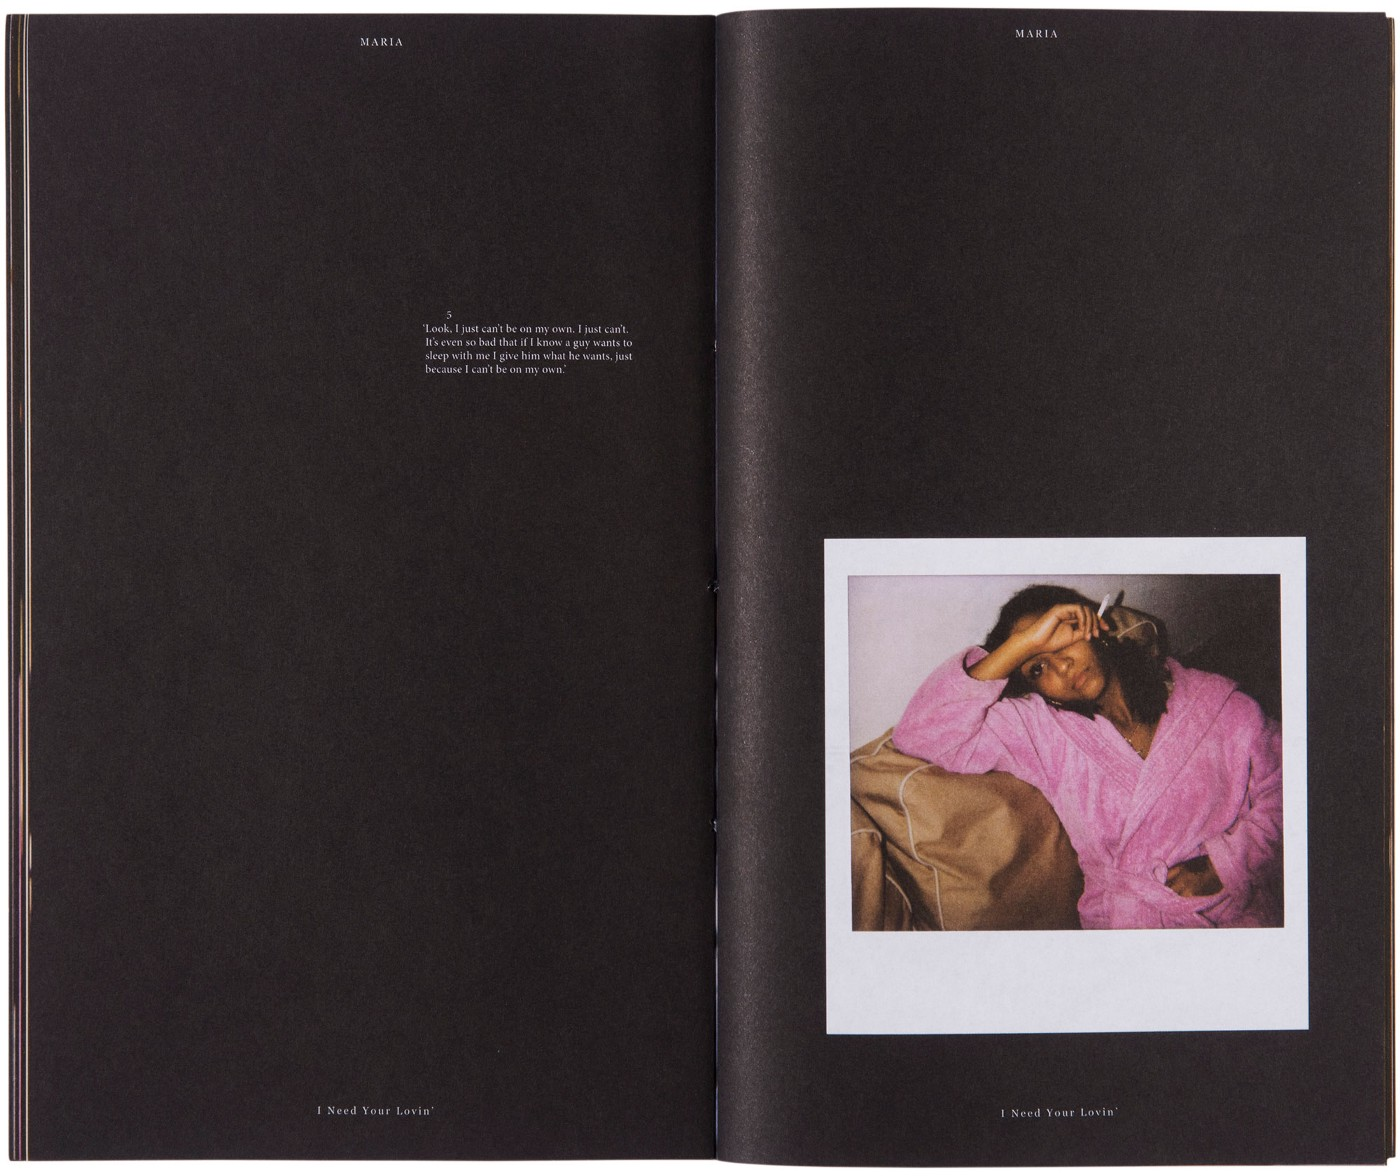 Photograph of an inside spread showing the black paper and a polaroid photograph of the woman on the right